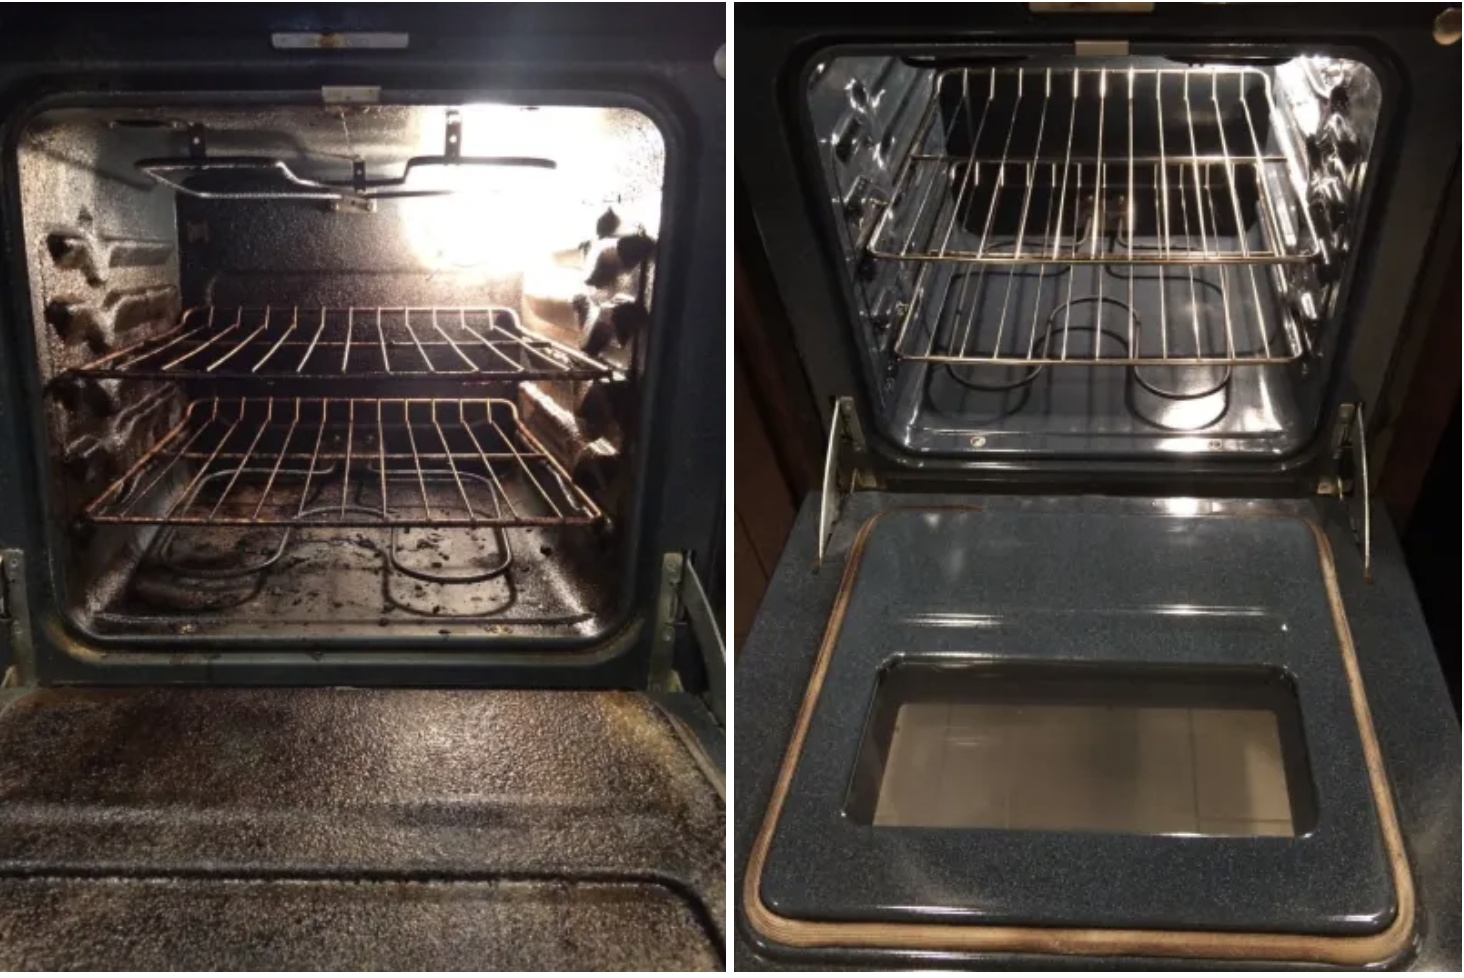 A reviewer's image of a dirty, grease-baked oven, and the same oven after use, sparkling clean